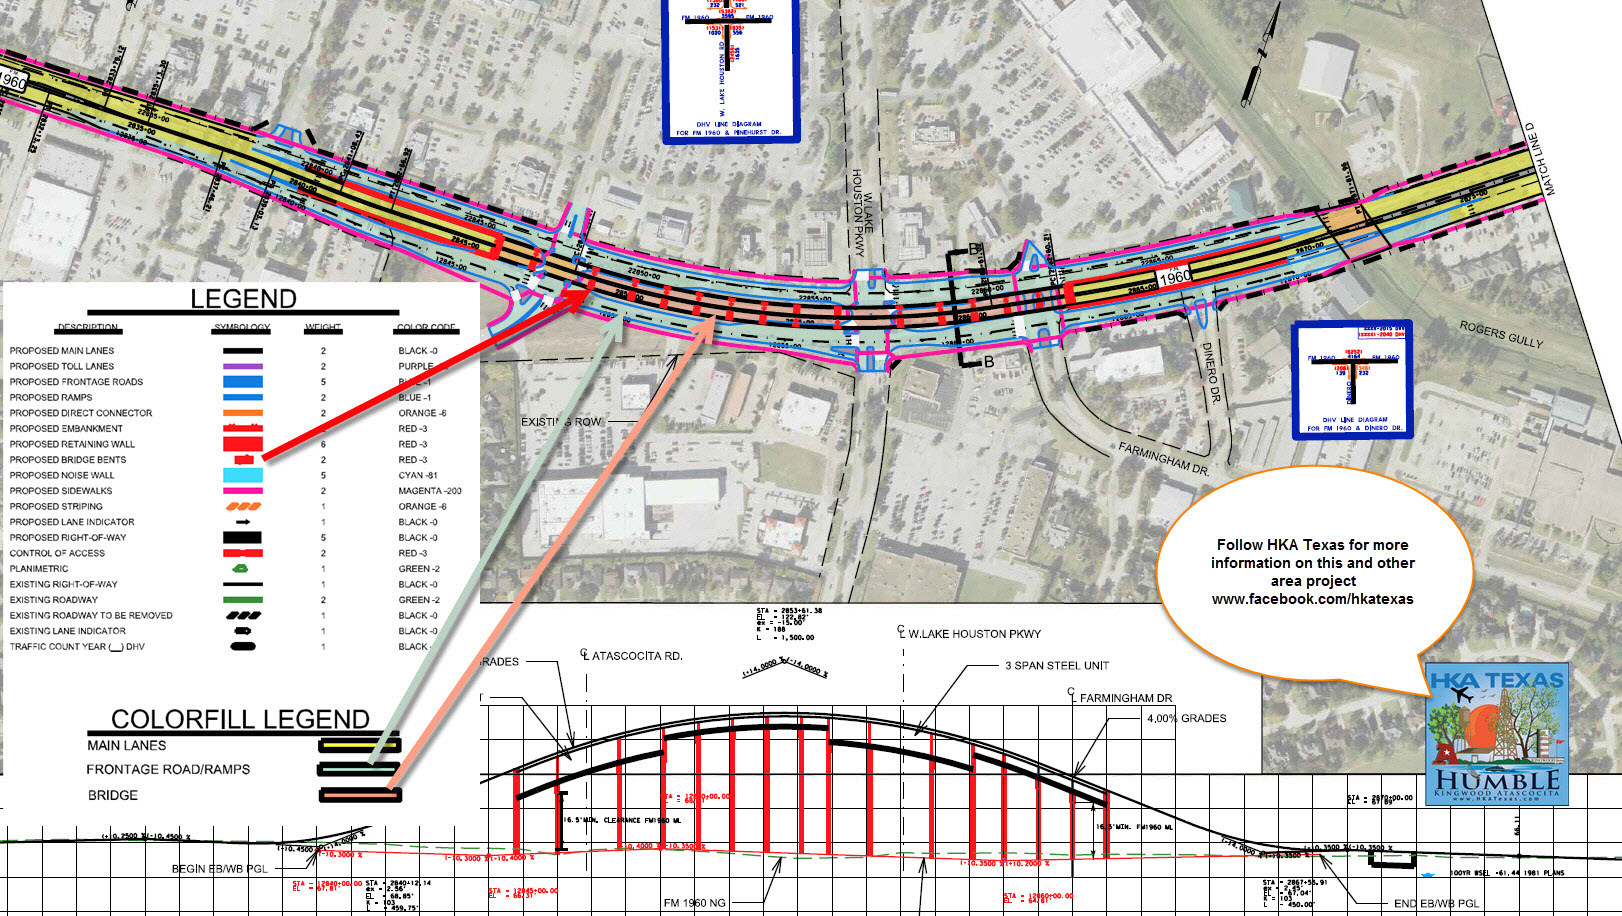 New Proposed Bridge Over Atascocita Rd And West Lake